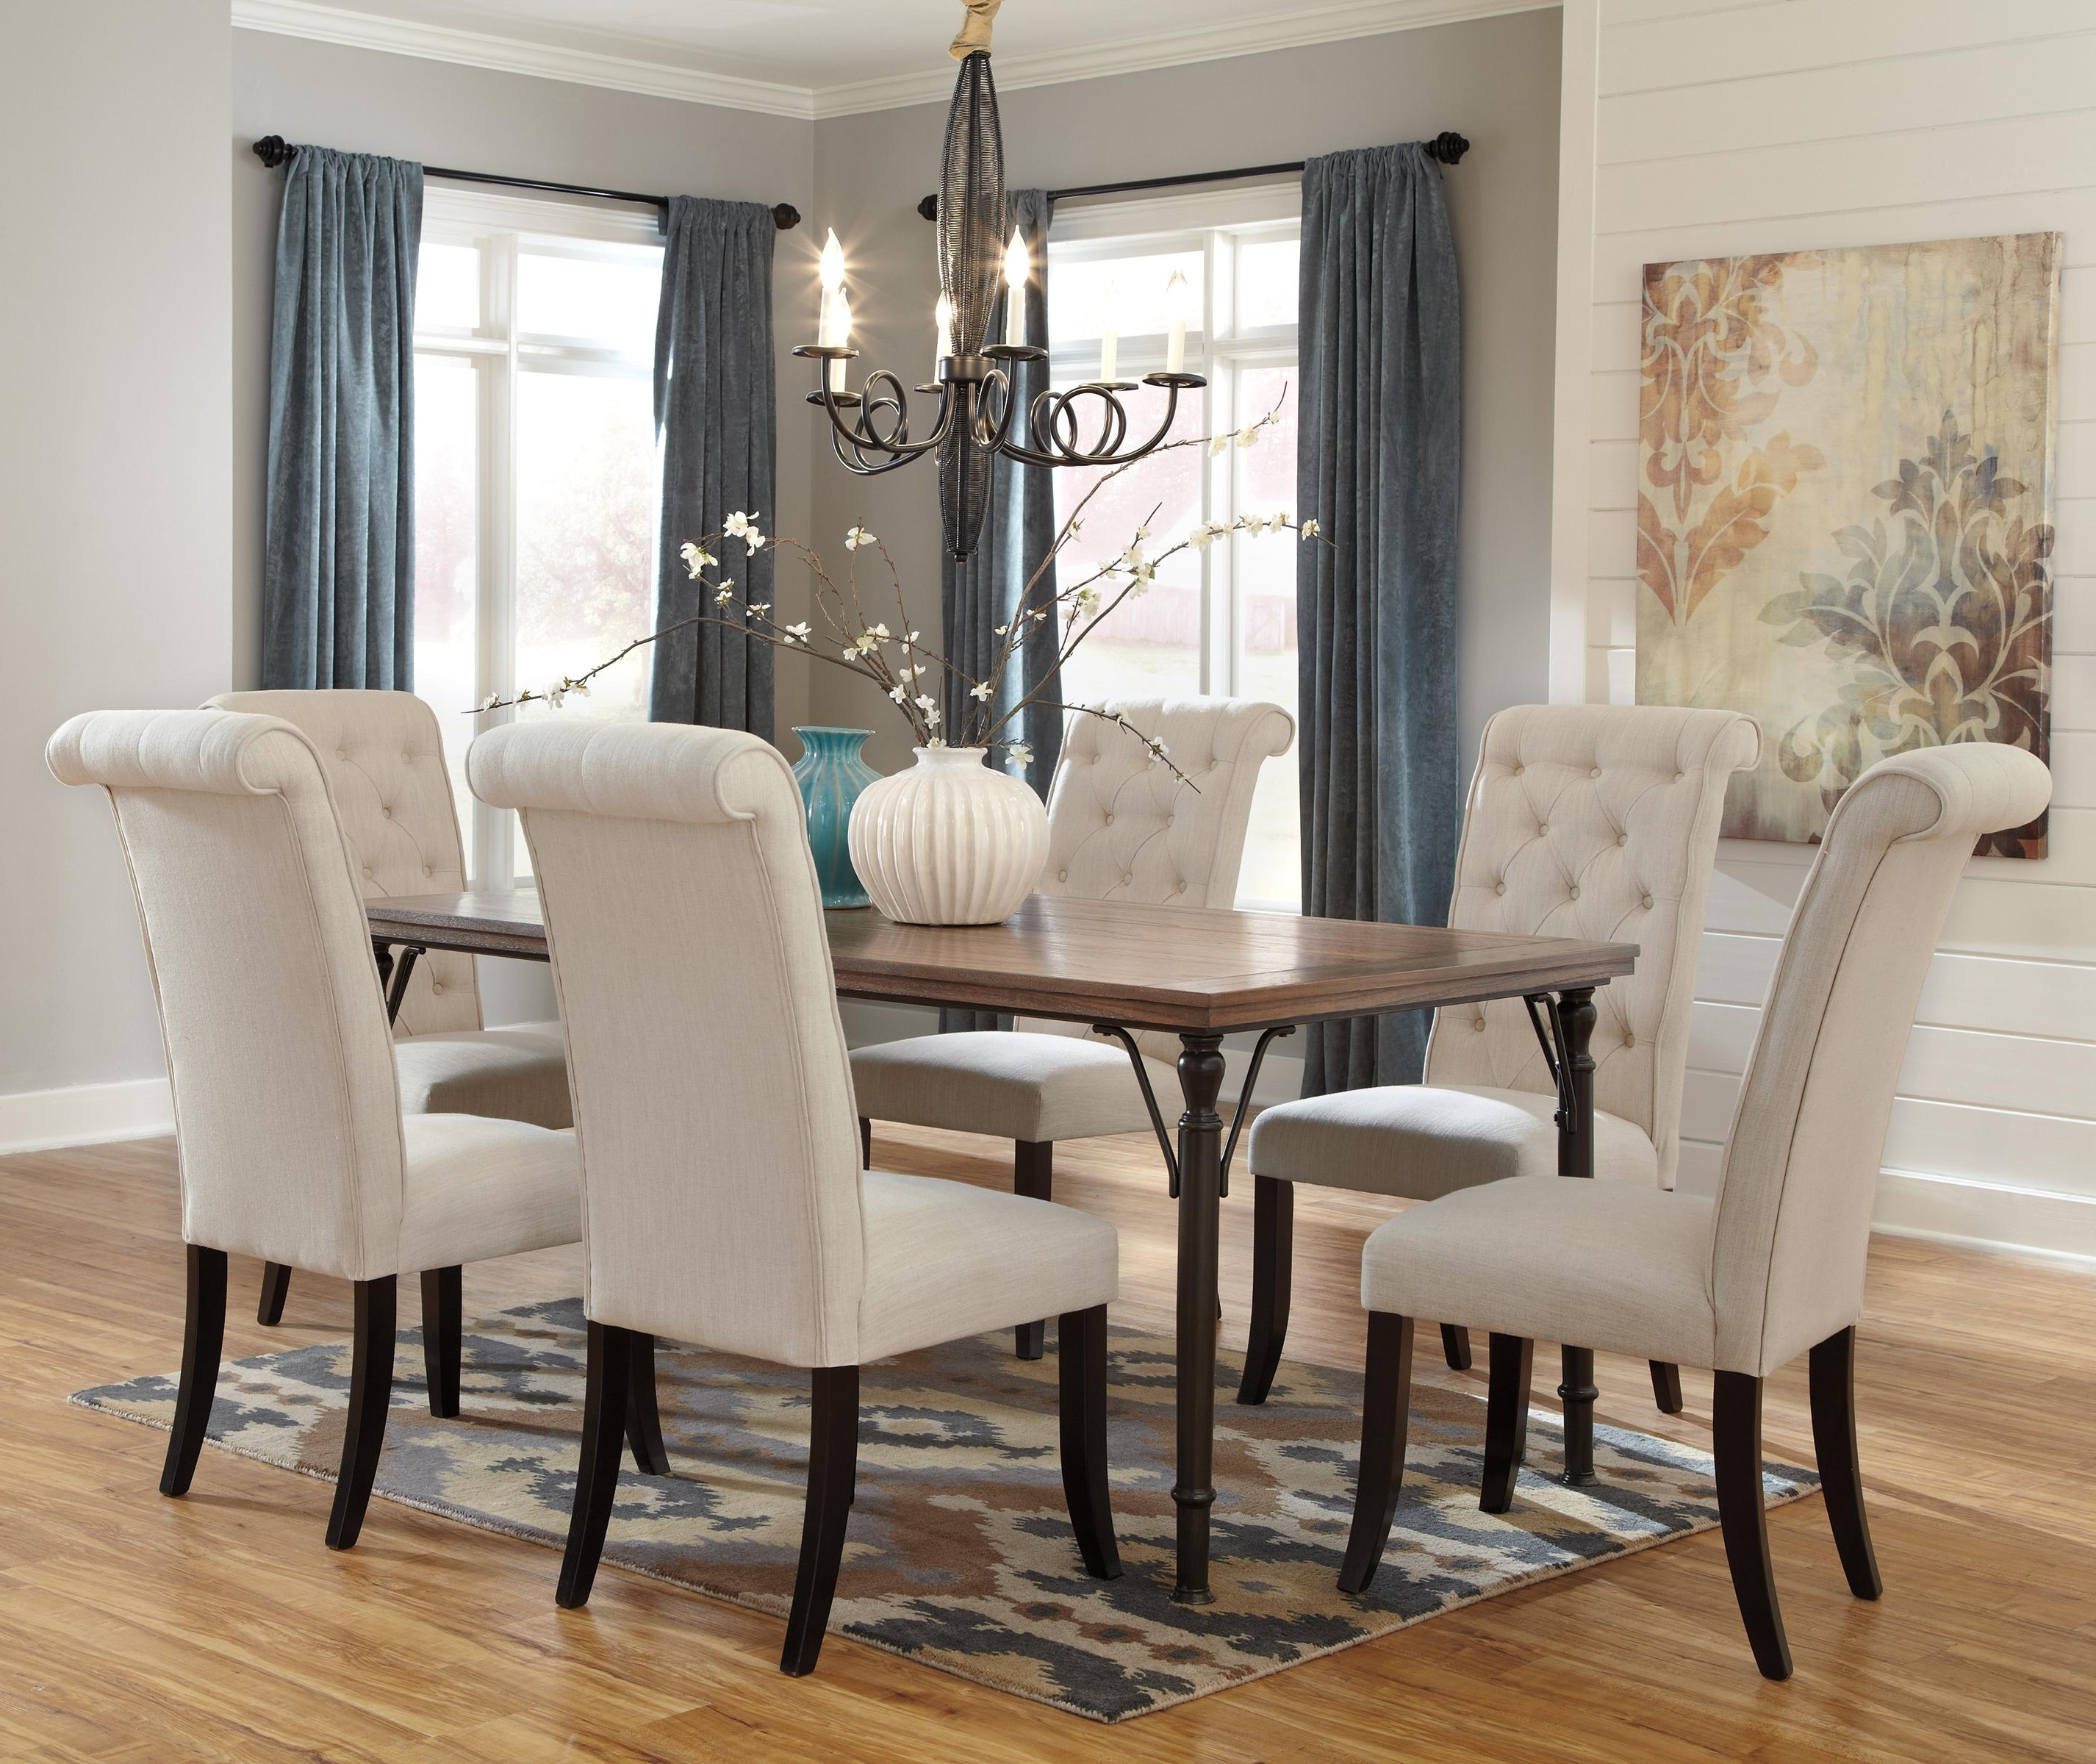 6 Chair Dining Table Sets Within 2017 Theodore 7 Piece Rectangular Dining Room Table Set W/ Wood Top (View 6 of 25)